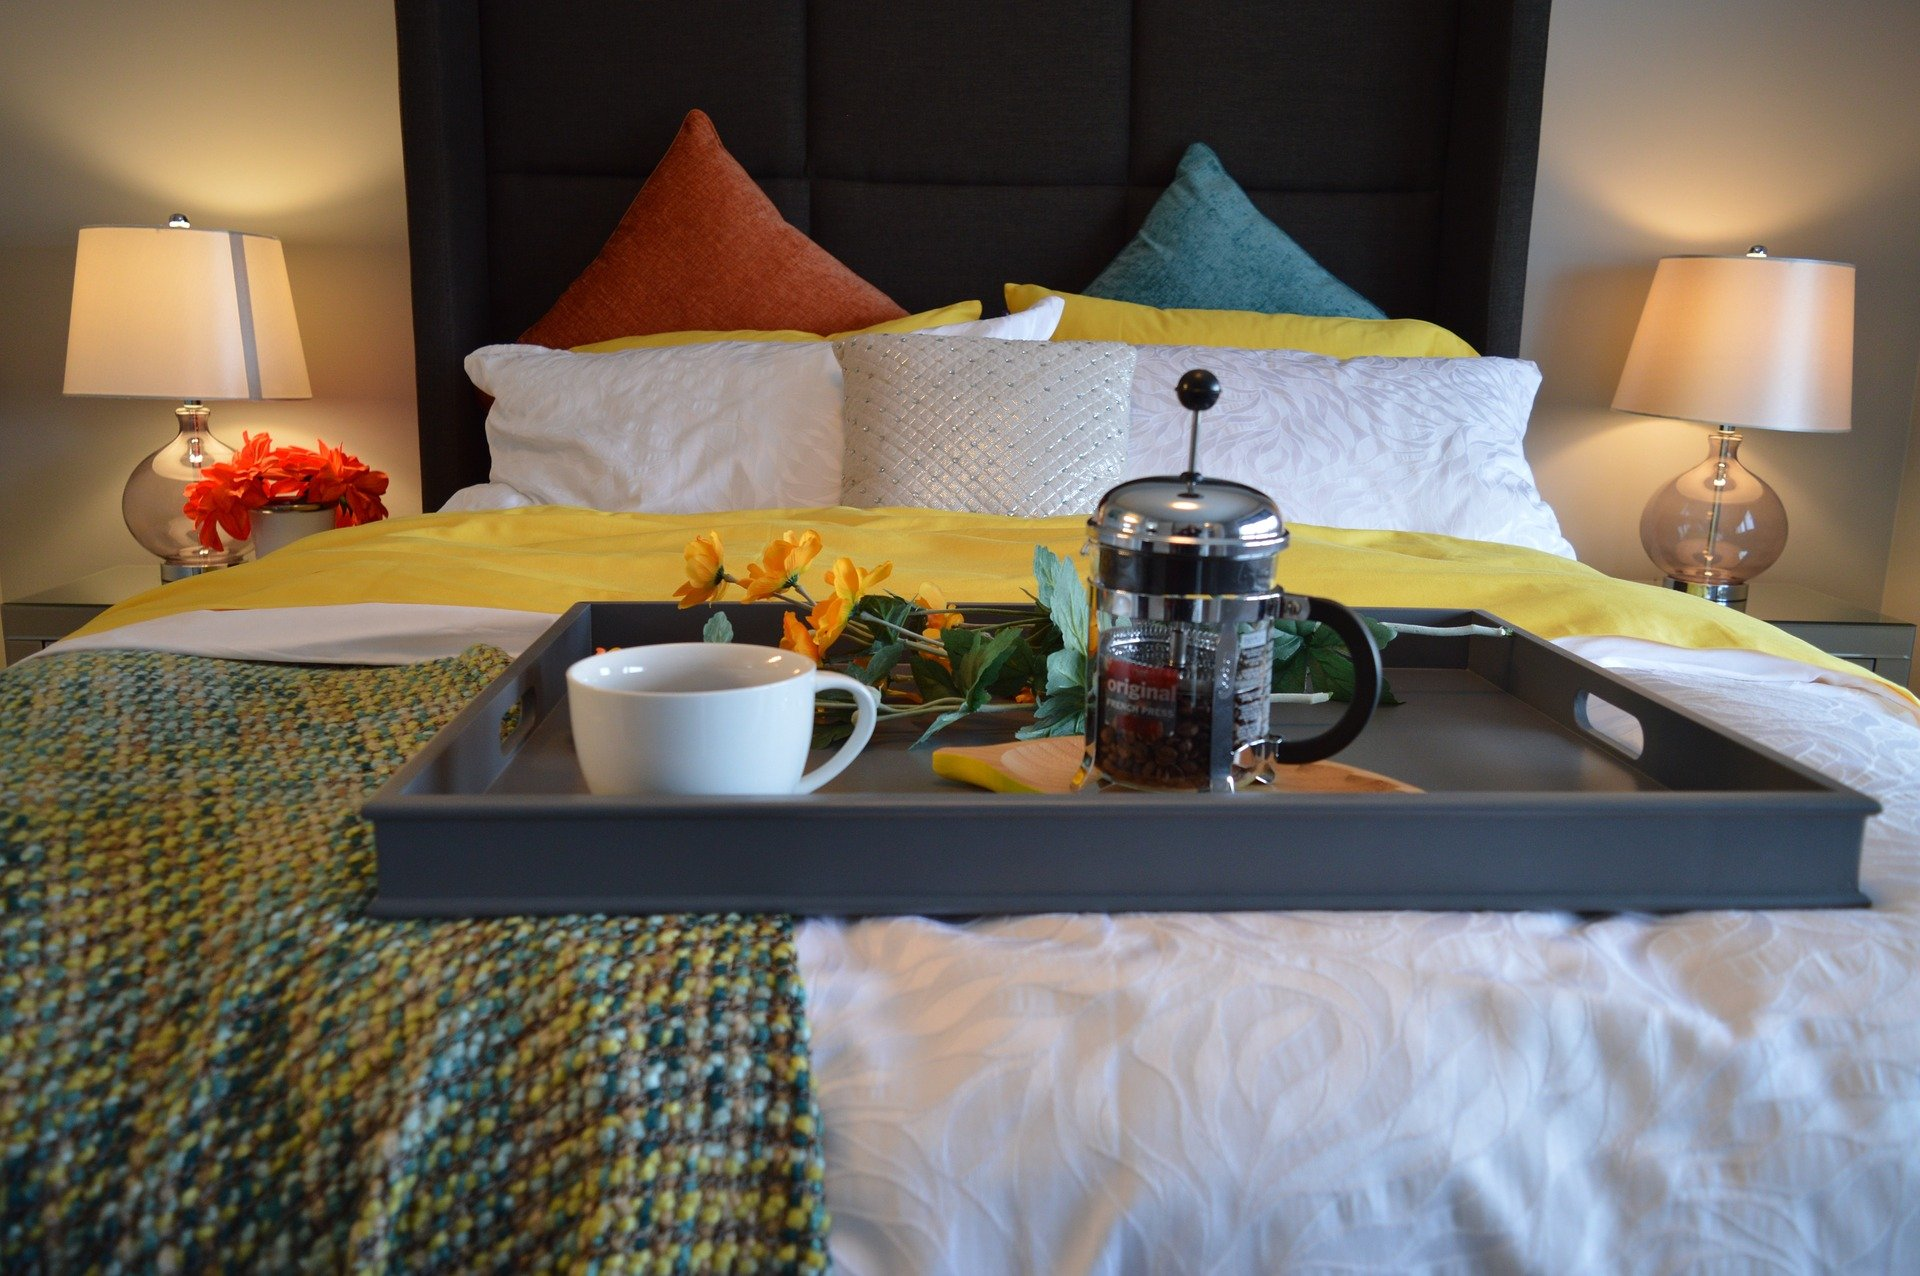 breakfast-in-bed-1158270_1920